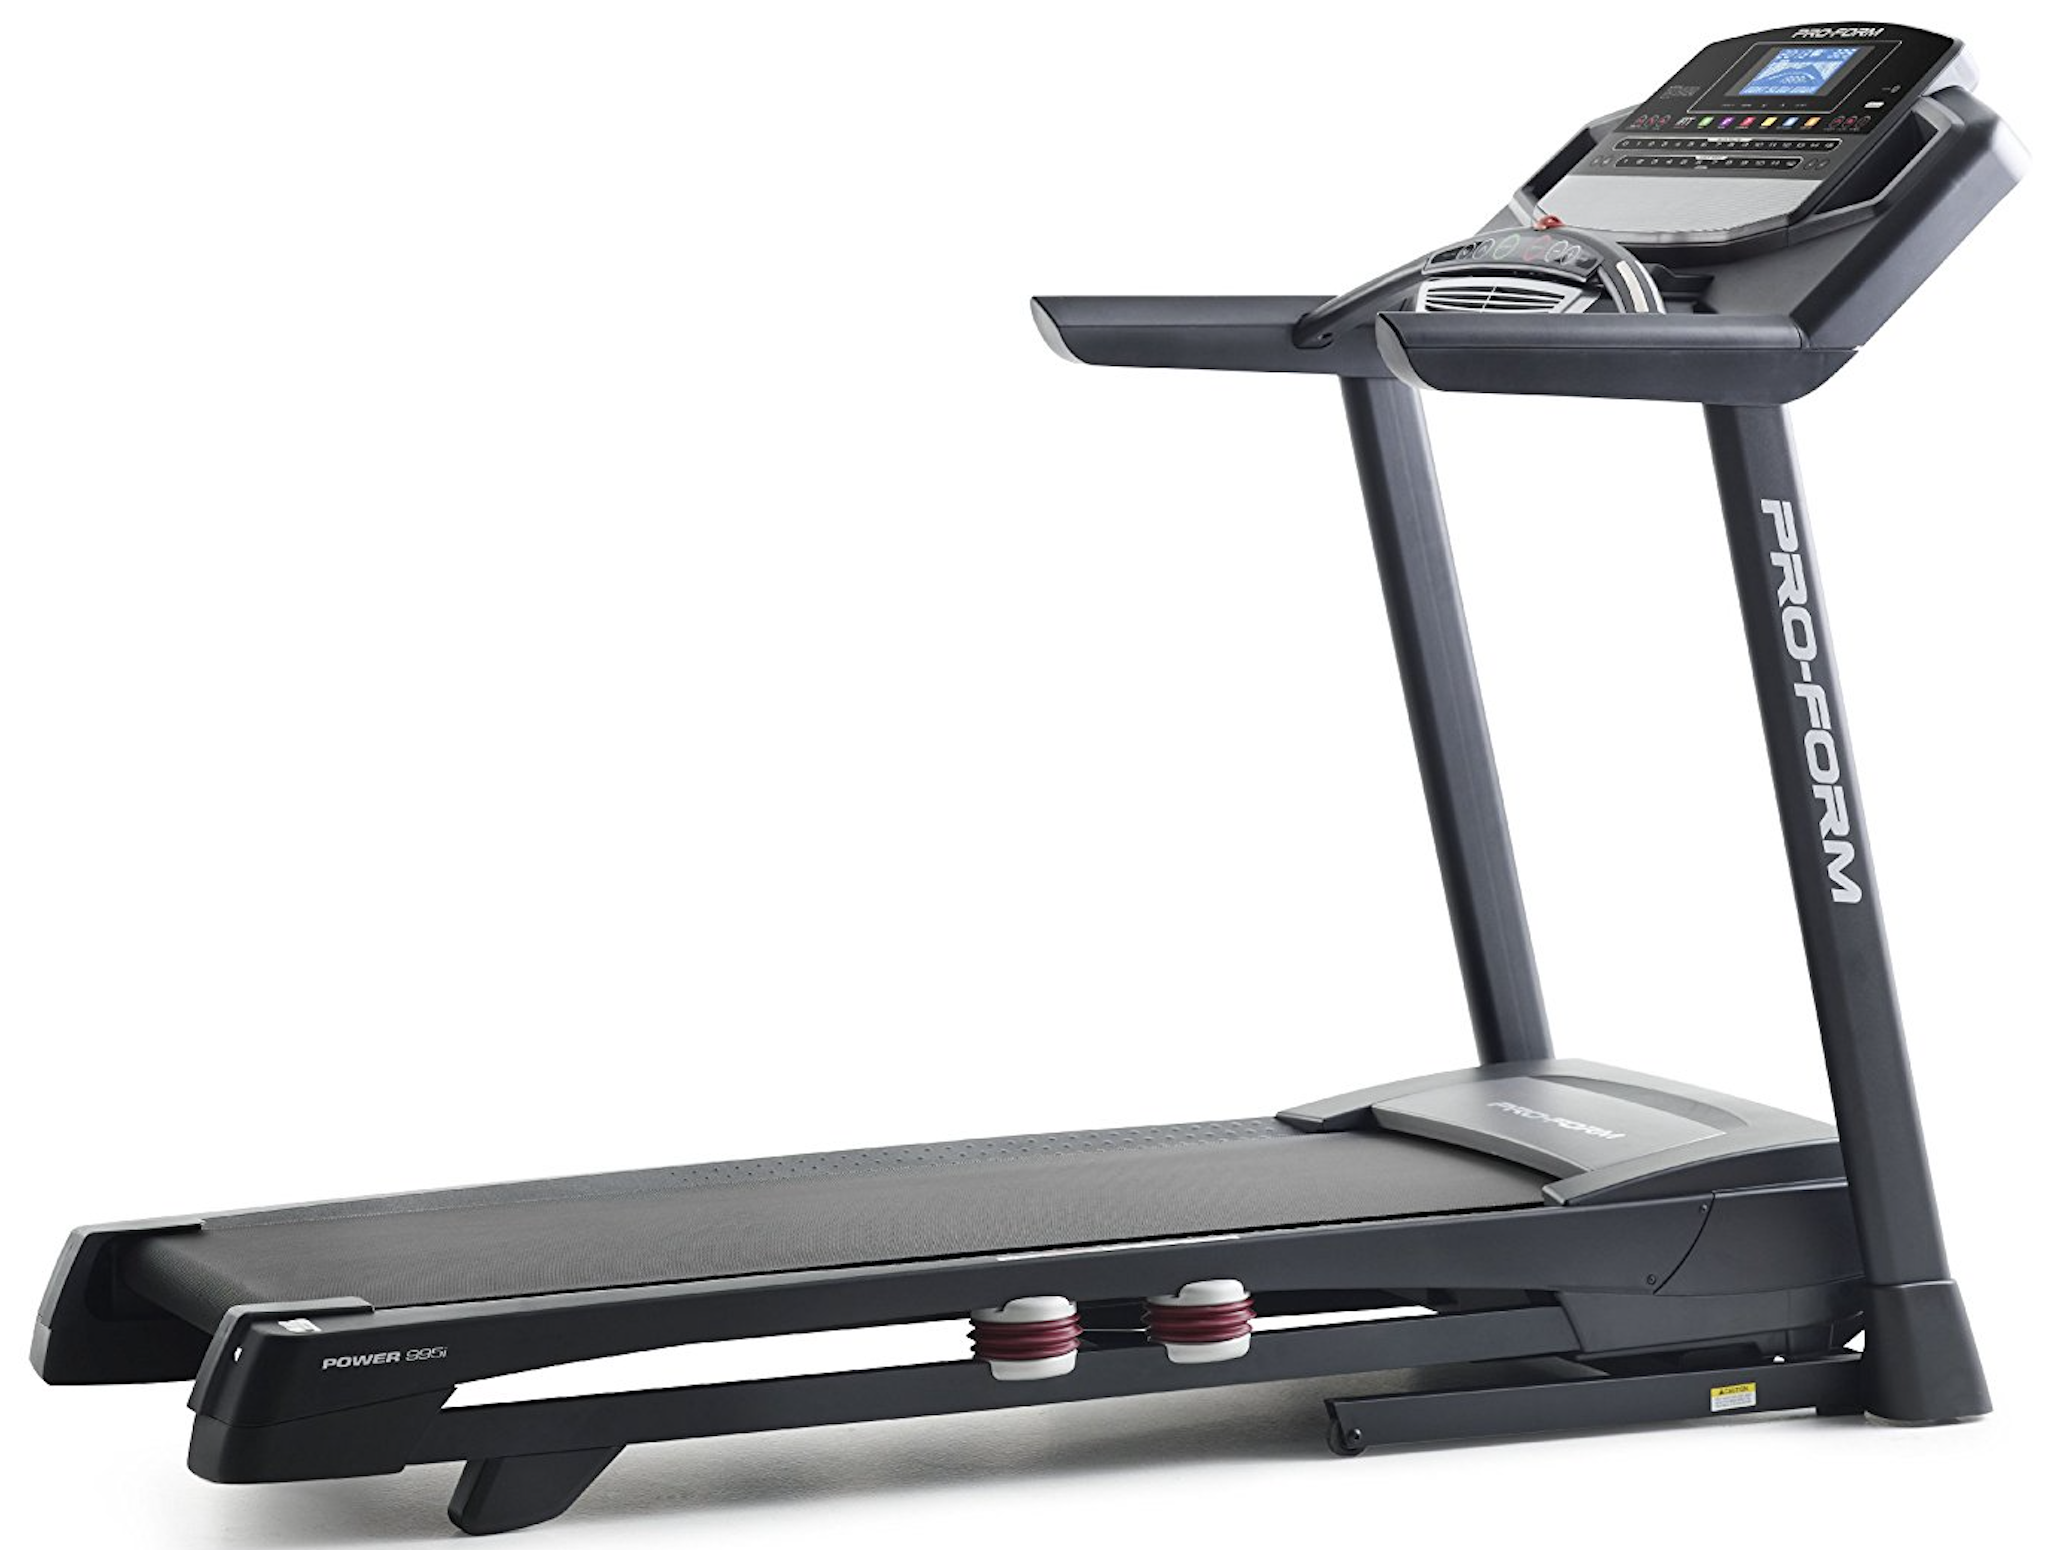 Proform Pro 2000 Treadmill Reviews 2018 Is It Reliable To Buy 10 Repair Short Circuit Power 995i Review